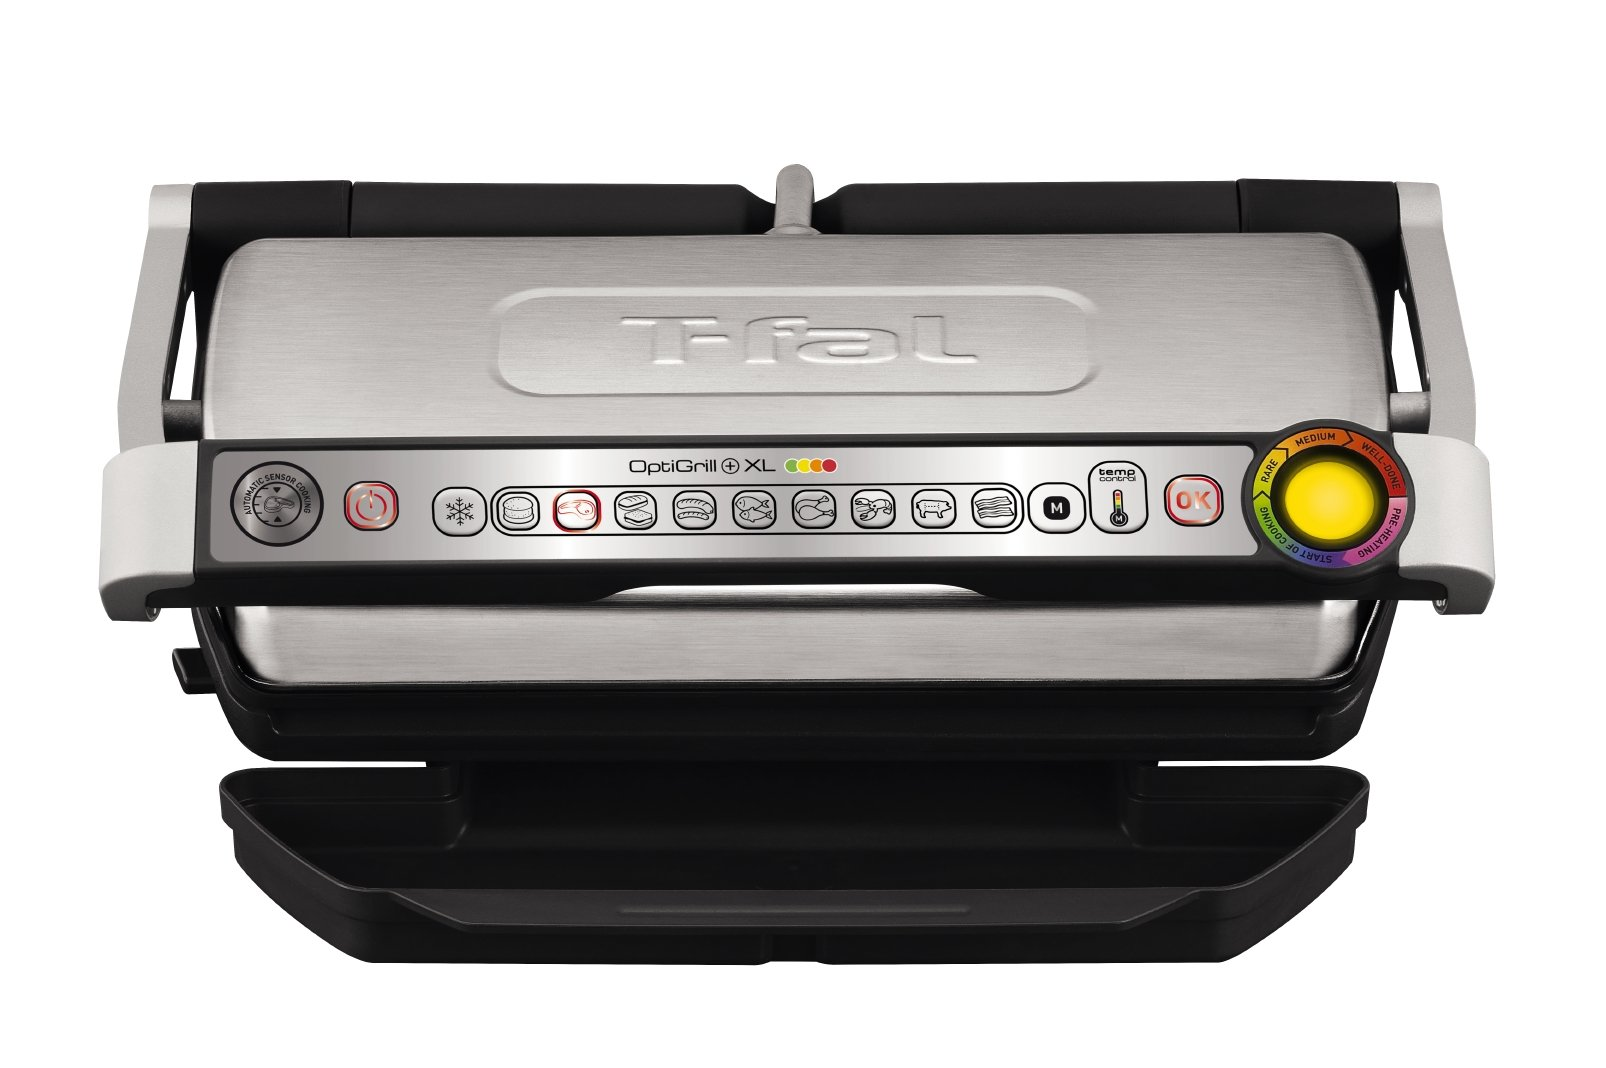 T-fal GC722D53 1800W OptiGrill XL Stainless Steel Large Indoor Electric Grill with Removable and Dishwasher Safe Plates, Silver by T-fal